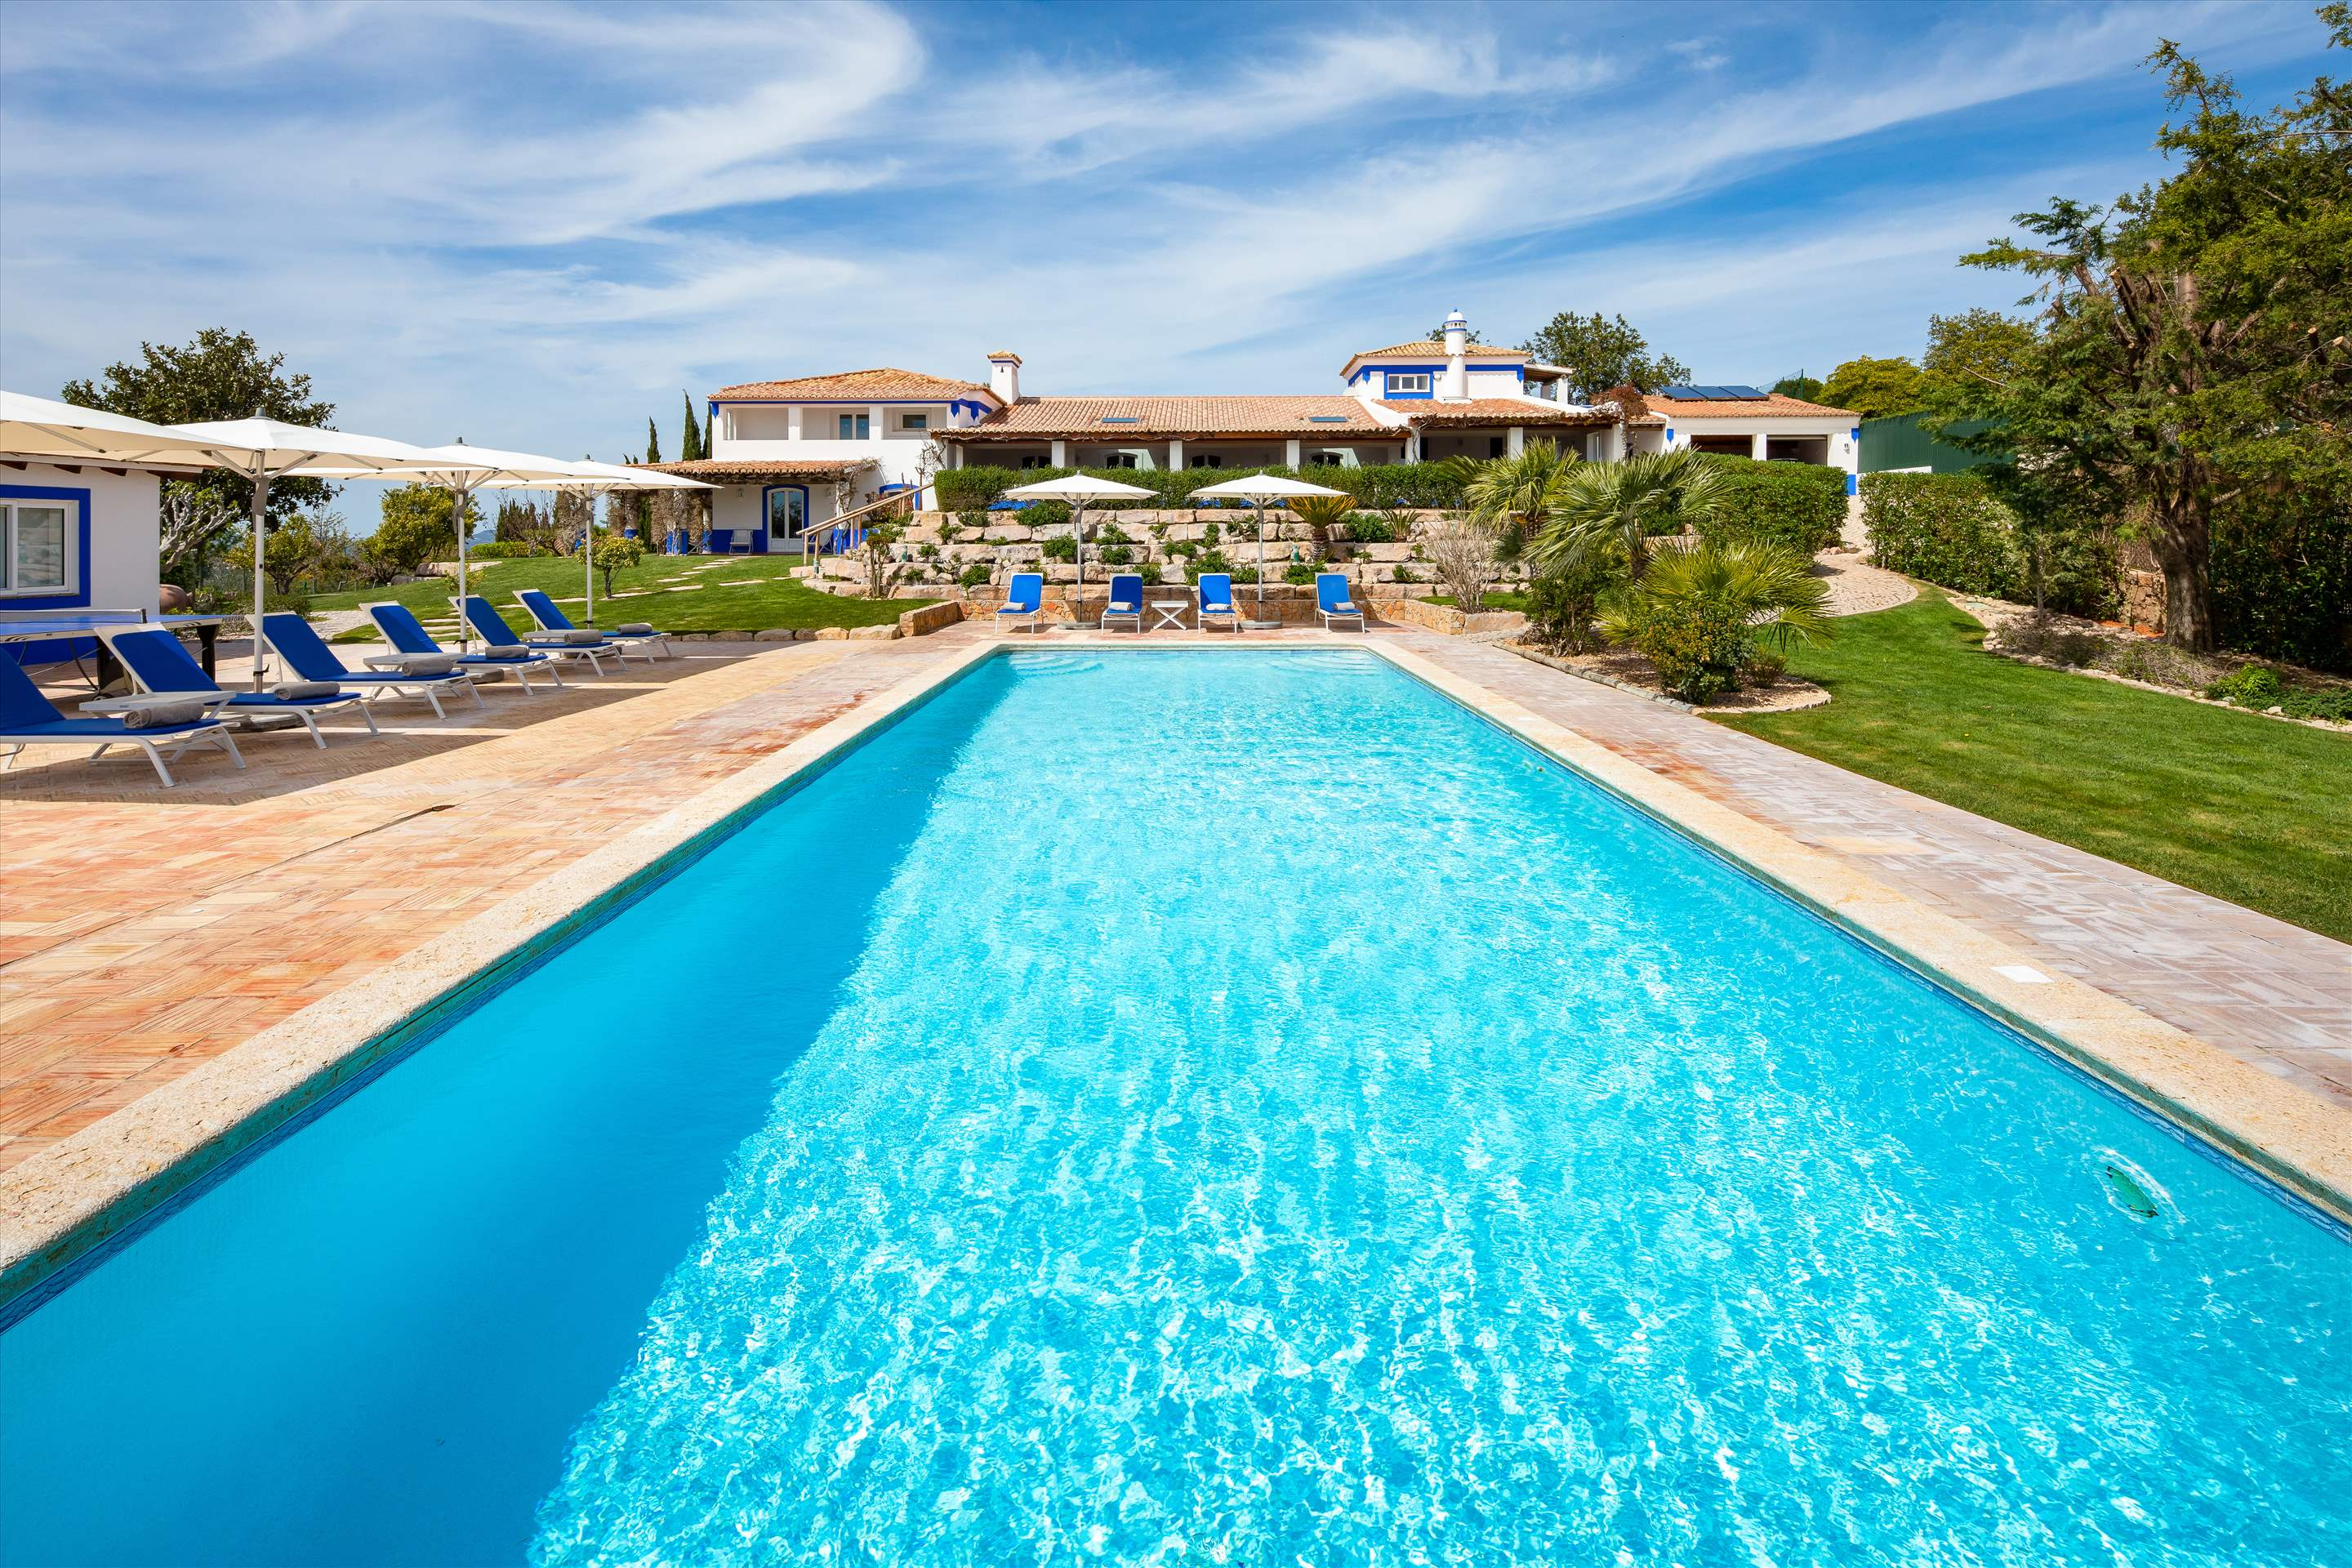 Casa da Montanha, 11-12 persons, 7 bedroom villa in Vilamoura Area, Algarve Photo #1